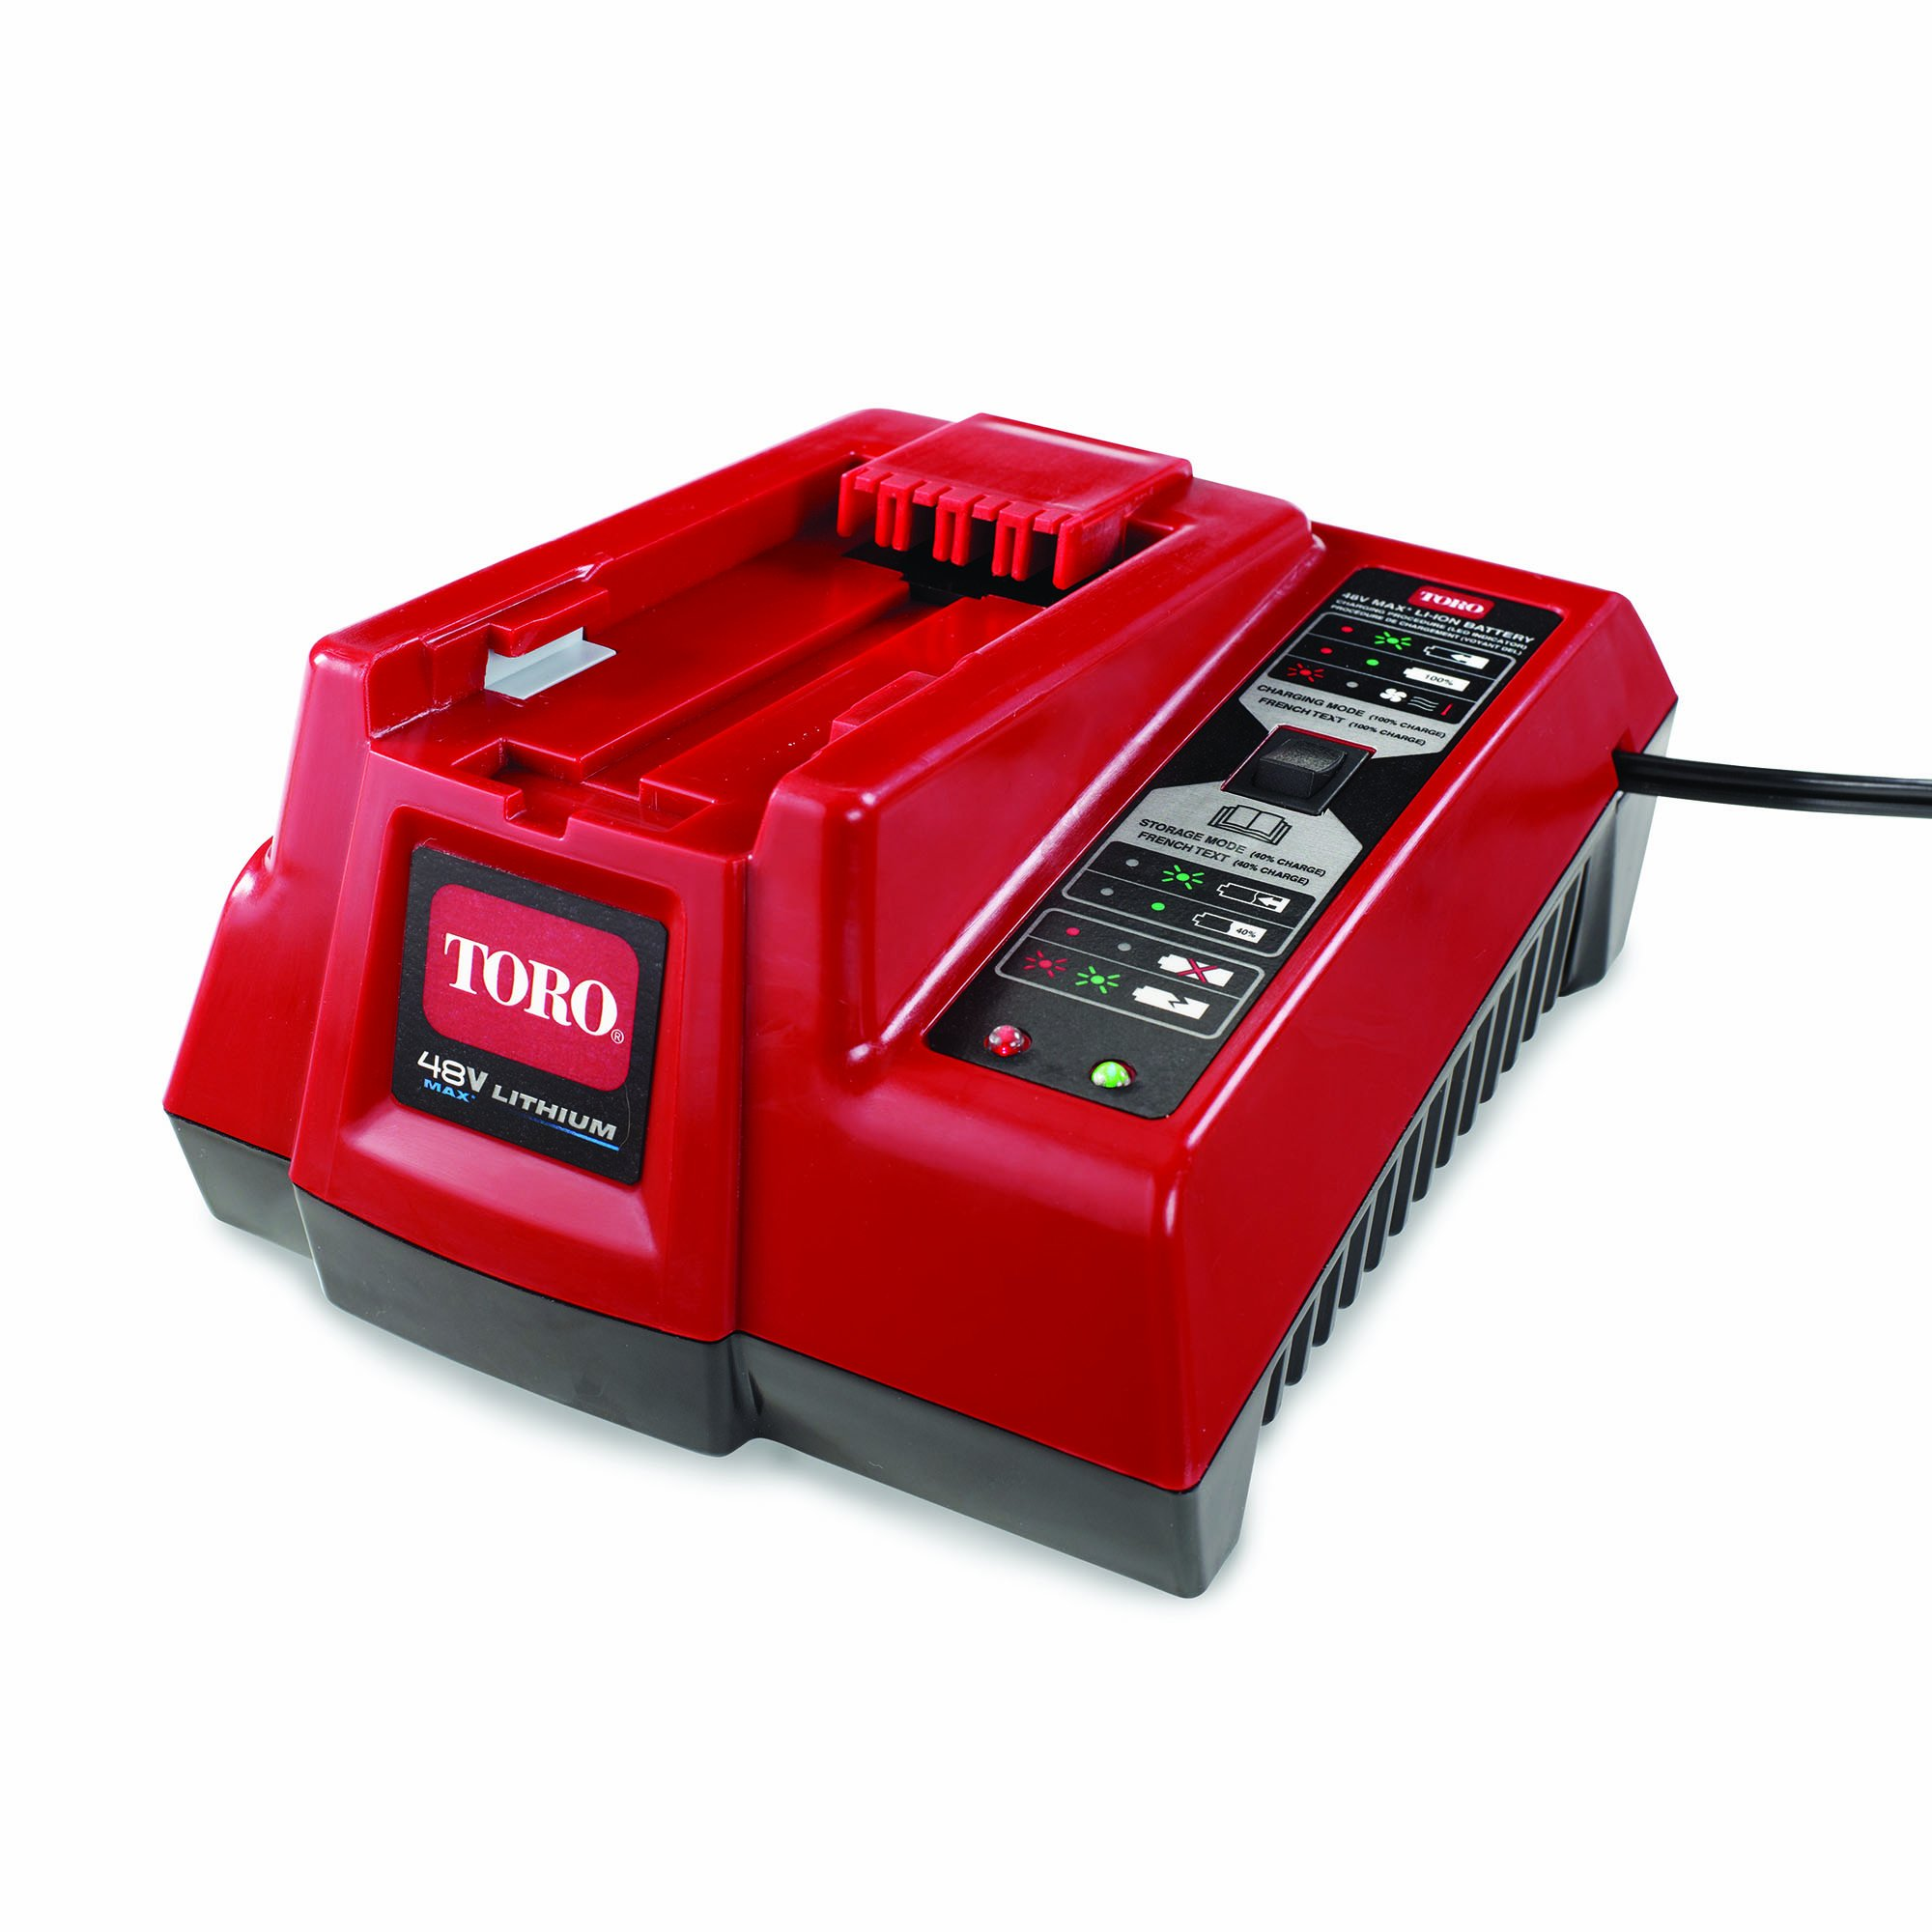 Toro 88507 Standard Charger for Trimmer Lithium-Ion Battery, 48-volt